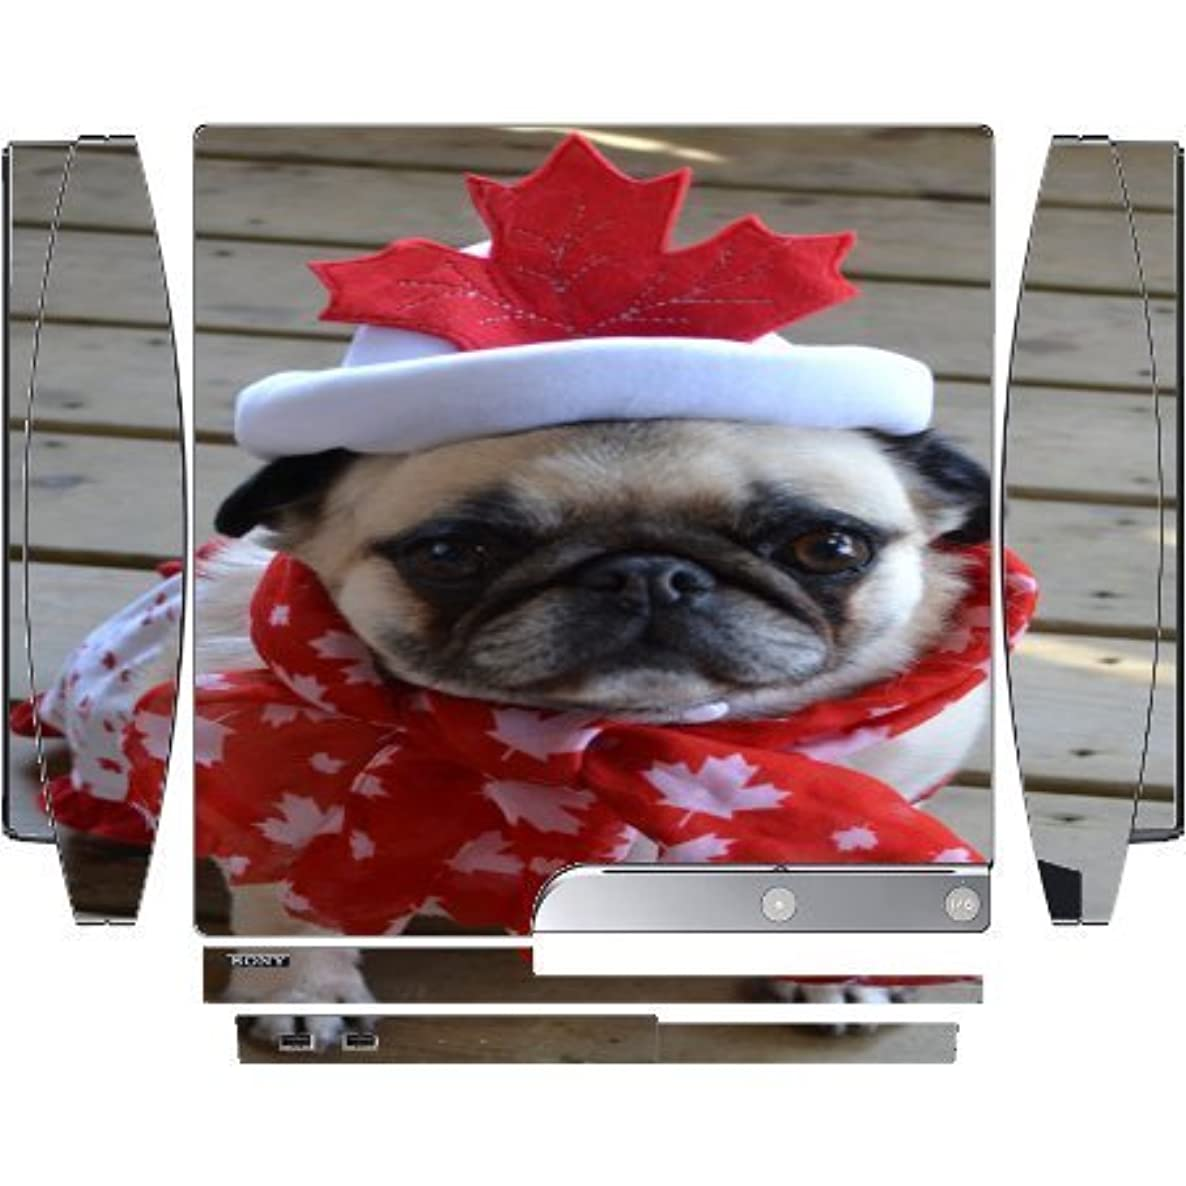 Canadian Pug Playstation 3 & PS3 Slim Vinyl Decal Sticker Skin by Compass Litho